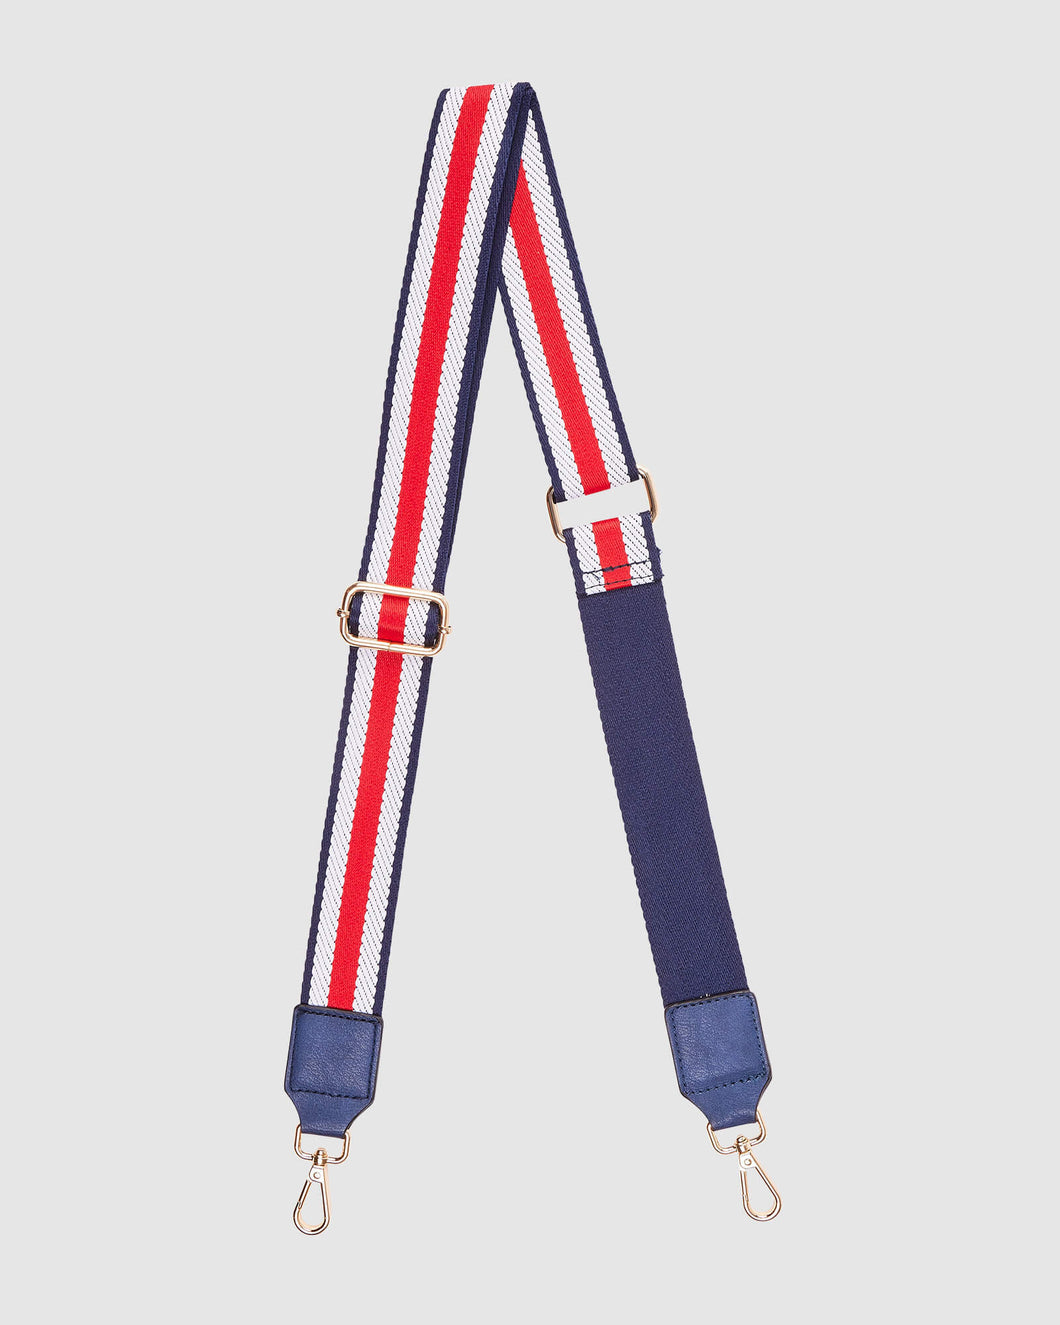 LOUENHIDE GILLY GUITAR STRAP - NAVY RASPBERRY STRIPE